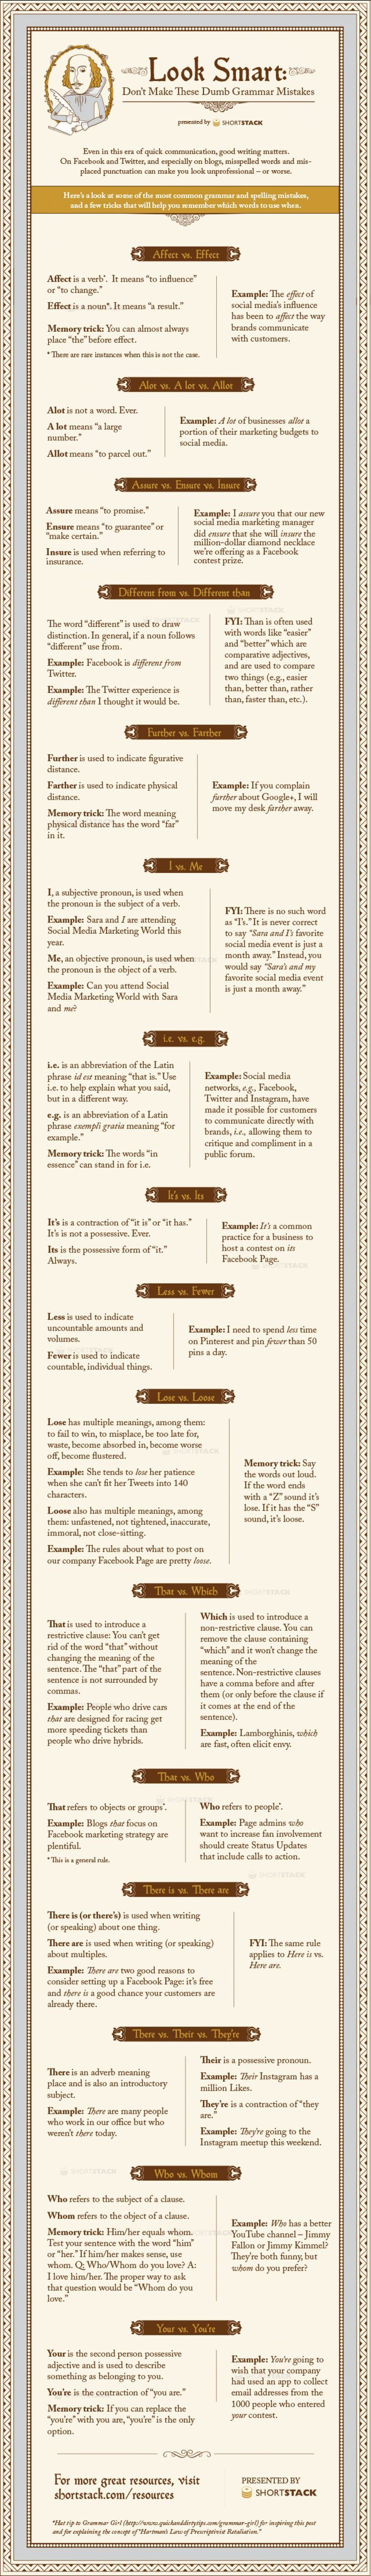 Educational infographic  Look Smart Don't Make These Dumb Writing Mistakes is part of Grammar - A